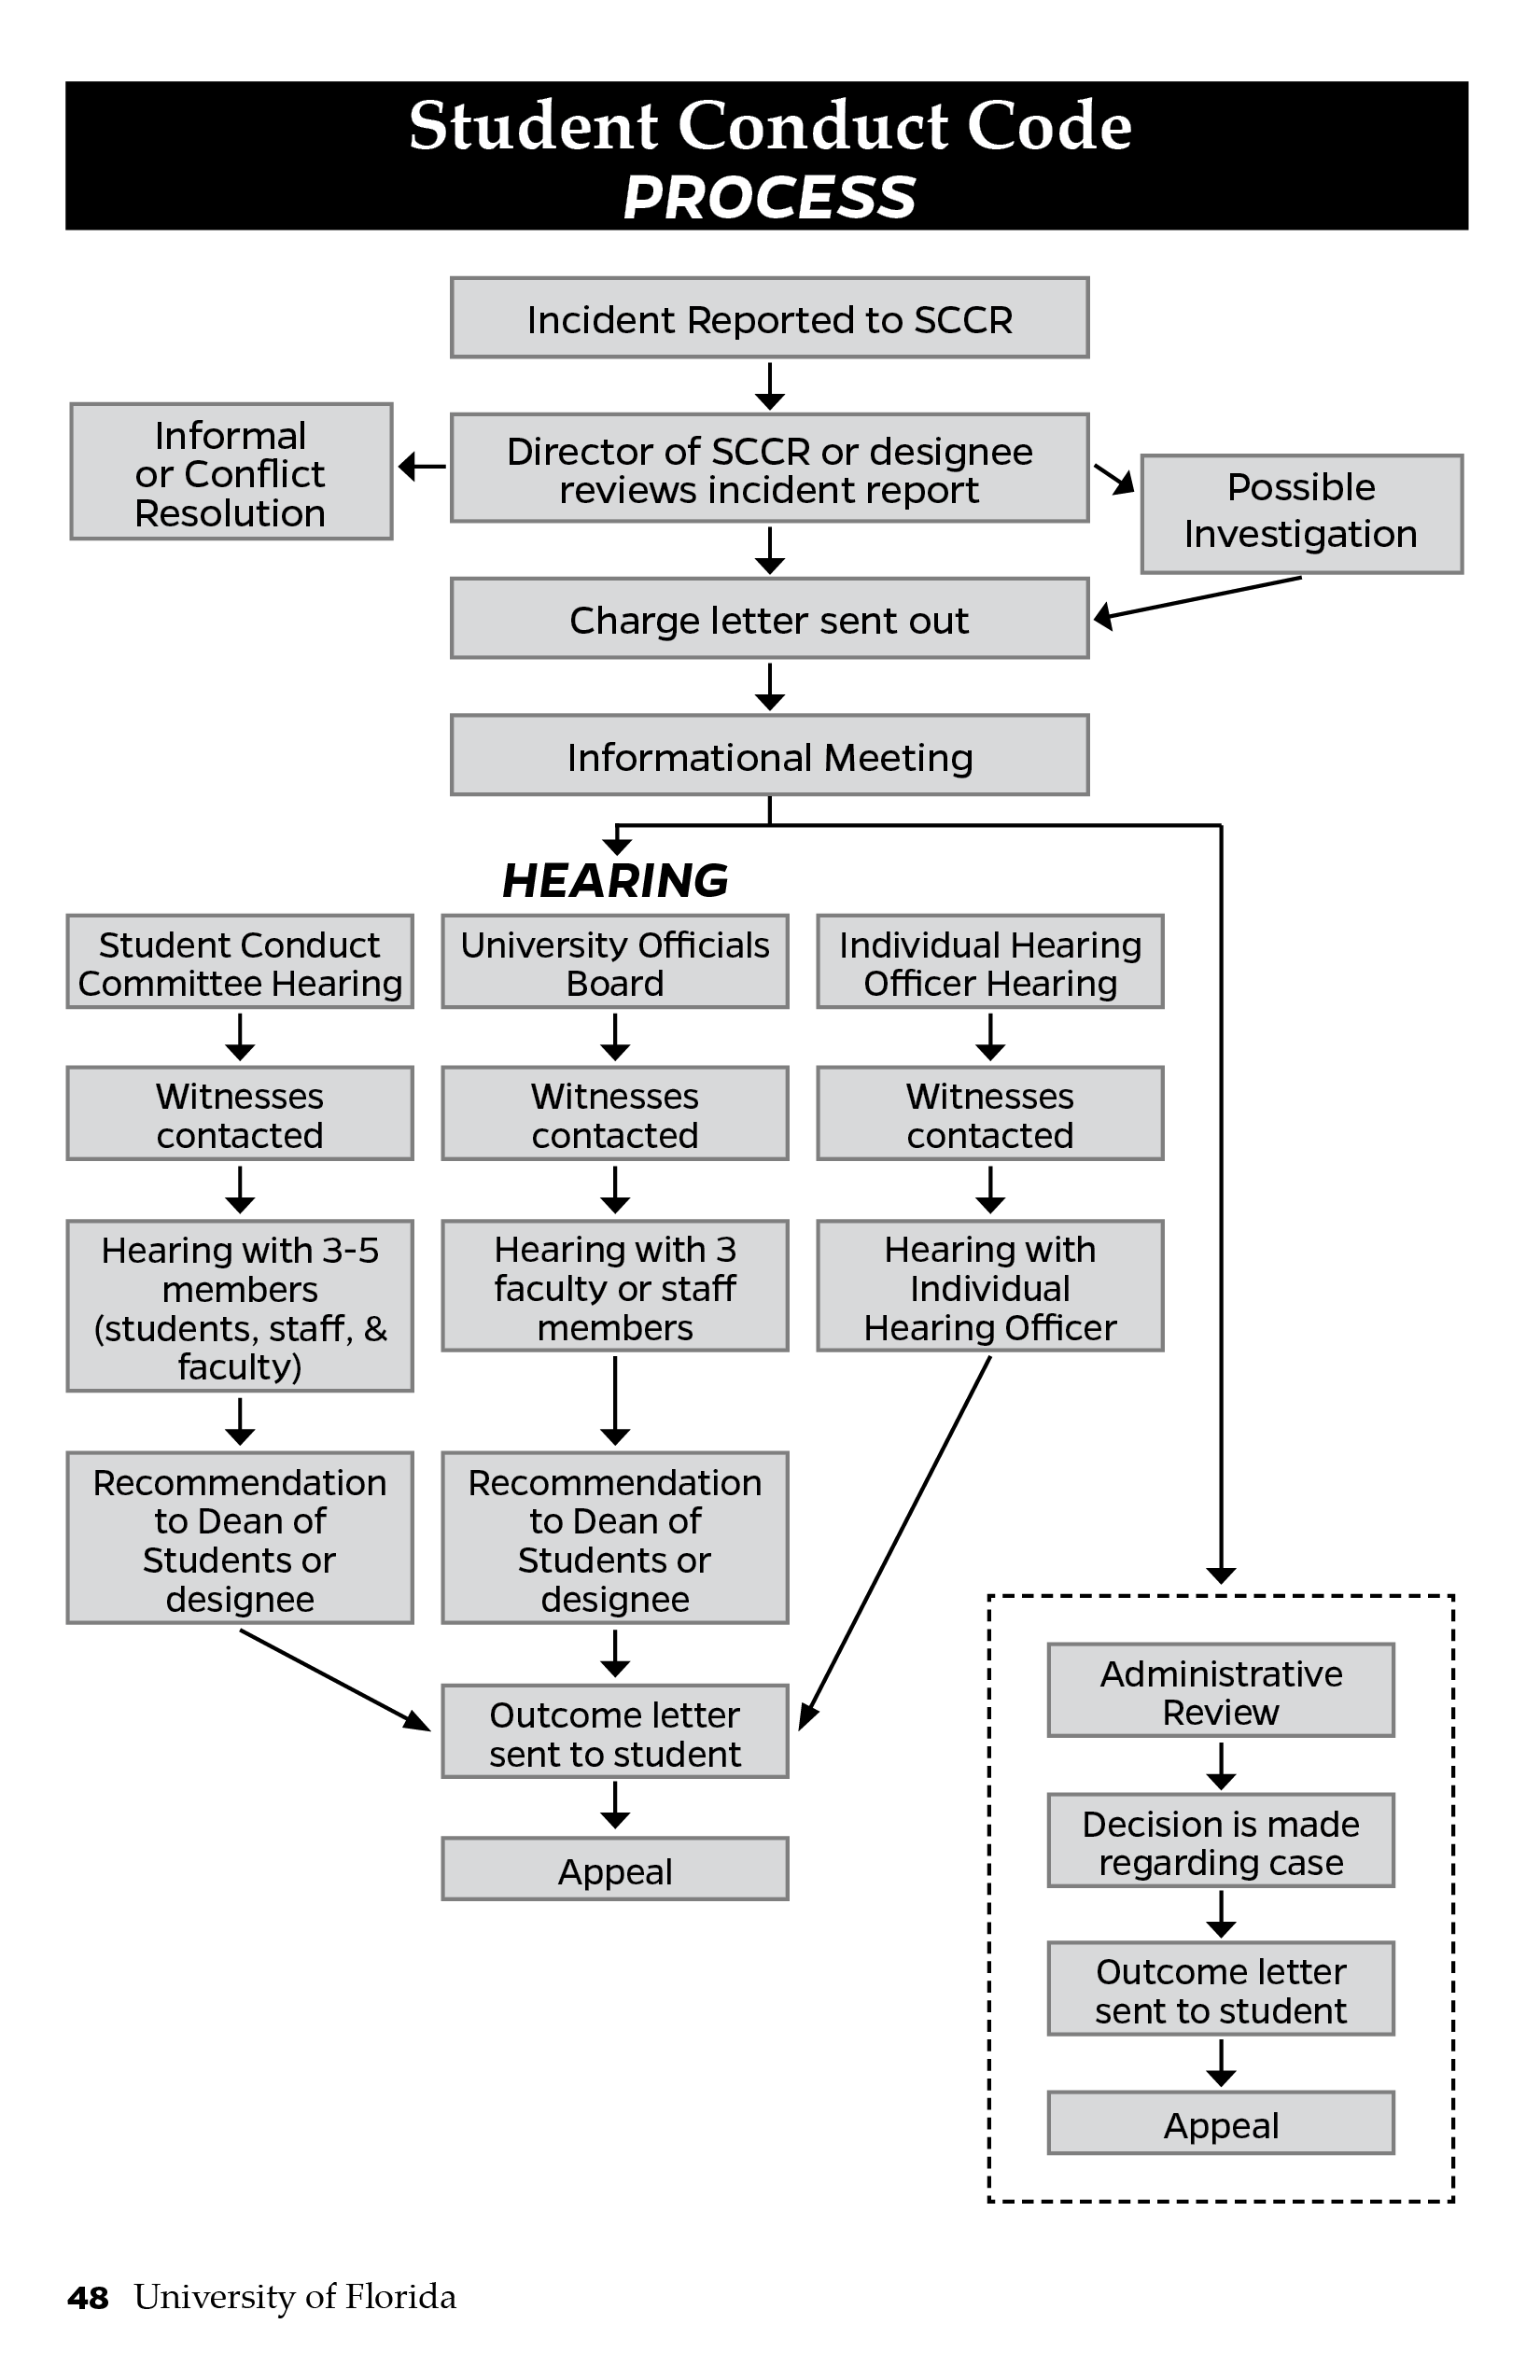 This is an image depicting the Student Conduct Code process, as explained in the Student Conduct Code and Student Honor Code. In summary, once an incident is reported to Student Conduct and Conflict Resolution (SCCR), the director of SCCR or a designee will review the incident report. Next a charge letter will be issued out and an information meeting will be scheduled. The incident may need possible investigation before a charge letter is sent out. From the informational meeting, a decision will be made whether to follow an informal or formal conduct code process. In the informal process, there is an administrative review of the case, a decision is made regarding the case and an outcome letter is sent to the student.  Decisions can be appealed. In the formal process, a Student Conduct Committee, a University Officials Board or the individual hearing office will hear the case. If the Student Conduct Committee hears the case, witnesses will be contacted. The hearing has 3 to 5 members (including students, staff and faculty). After the hearing, a recommendation will be sent to the Dean of Students or designee for a decision. An outcome letter will be sent to the student. The student can then fulfill the sanctions or appeal the decision. If the University Officials Board hears the case, witnesses will be contacted. The hearing has 3 staff and faculty members. After the hearing, a recommendation will be sent to the Dean of Students or designee for a decision. An outcome letter will be sent to the student. The student can then fulfill the sanctions or appeal the decision. Finally, if an individual hearing office hears the case, witnesses will be contacted. The hearing is with an individual hearing officer. An outcome letter will be sent to the student. The student can then fulfill the sanctions or appeal the decision.